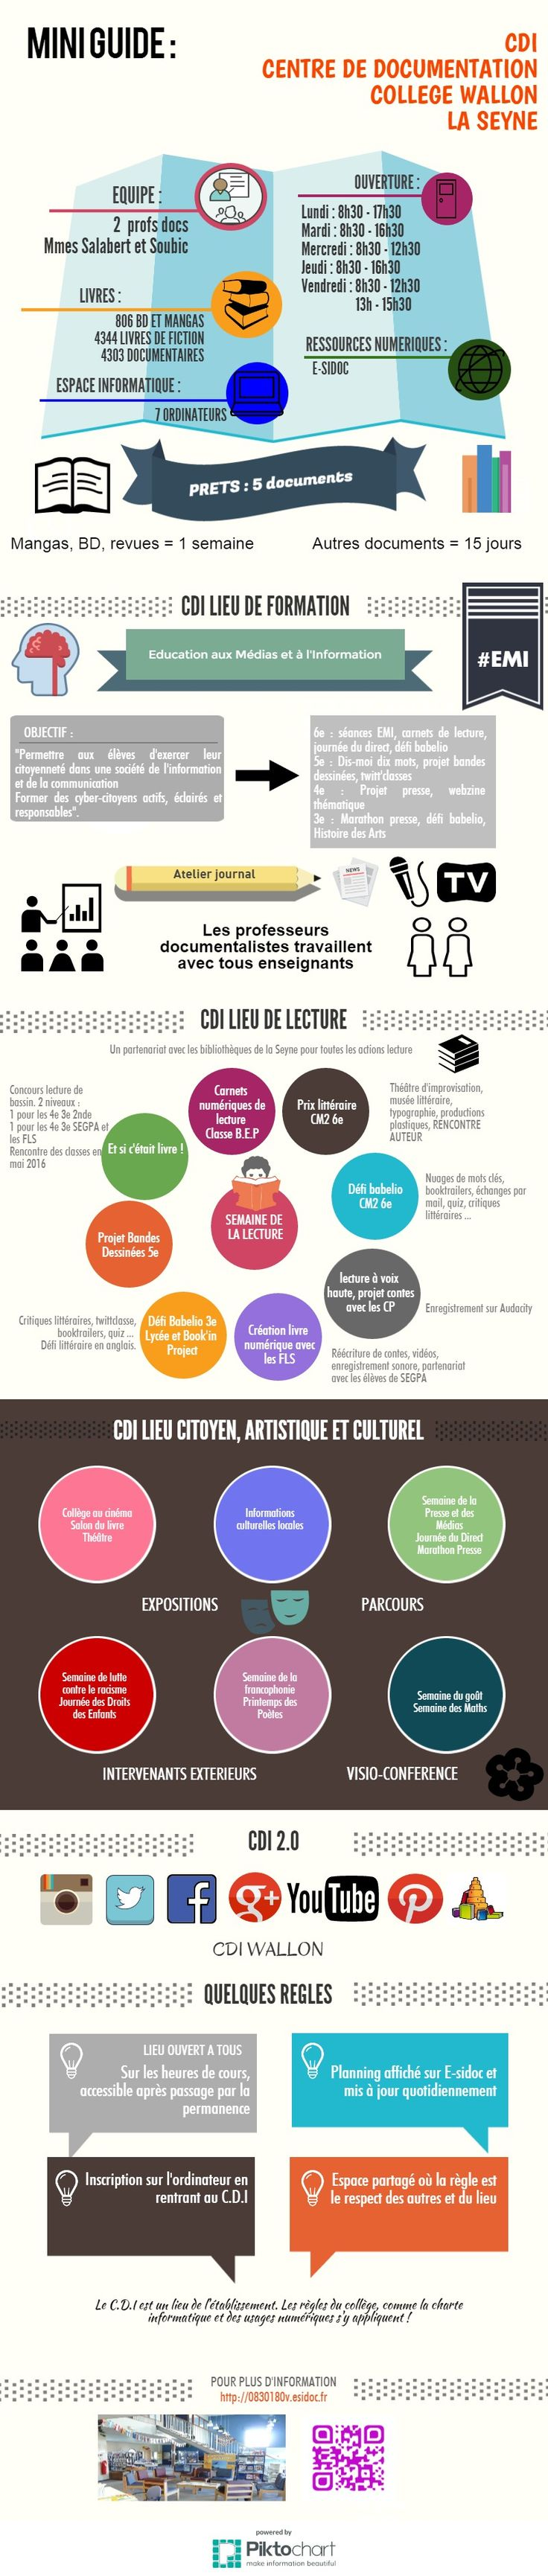 MINI GUIDE CDI WALLON LA SEYNE | Piktochart Infographic Editor